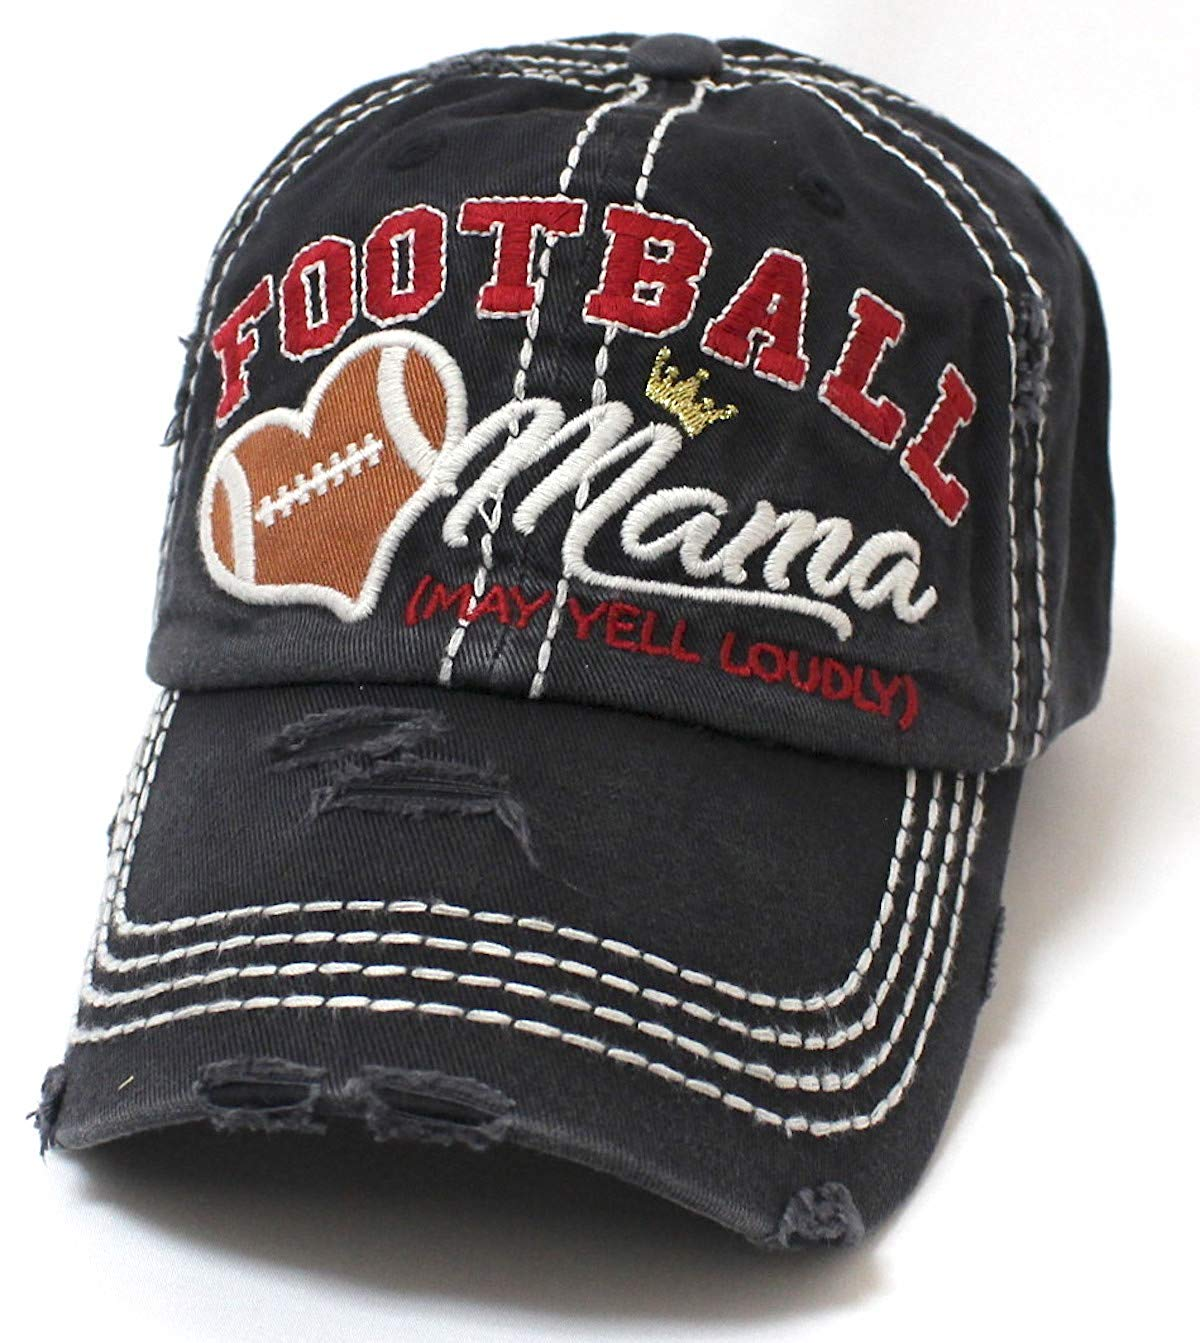 CAPS 'N VINTAGE Black Football Mama Cheer Queen Hat - Caps 'N Vintage